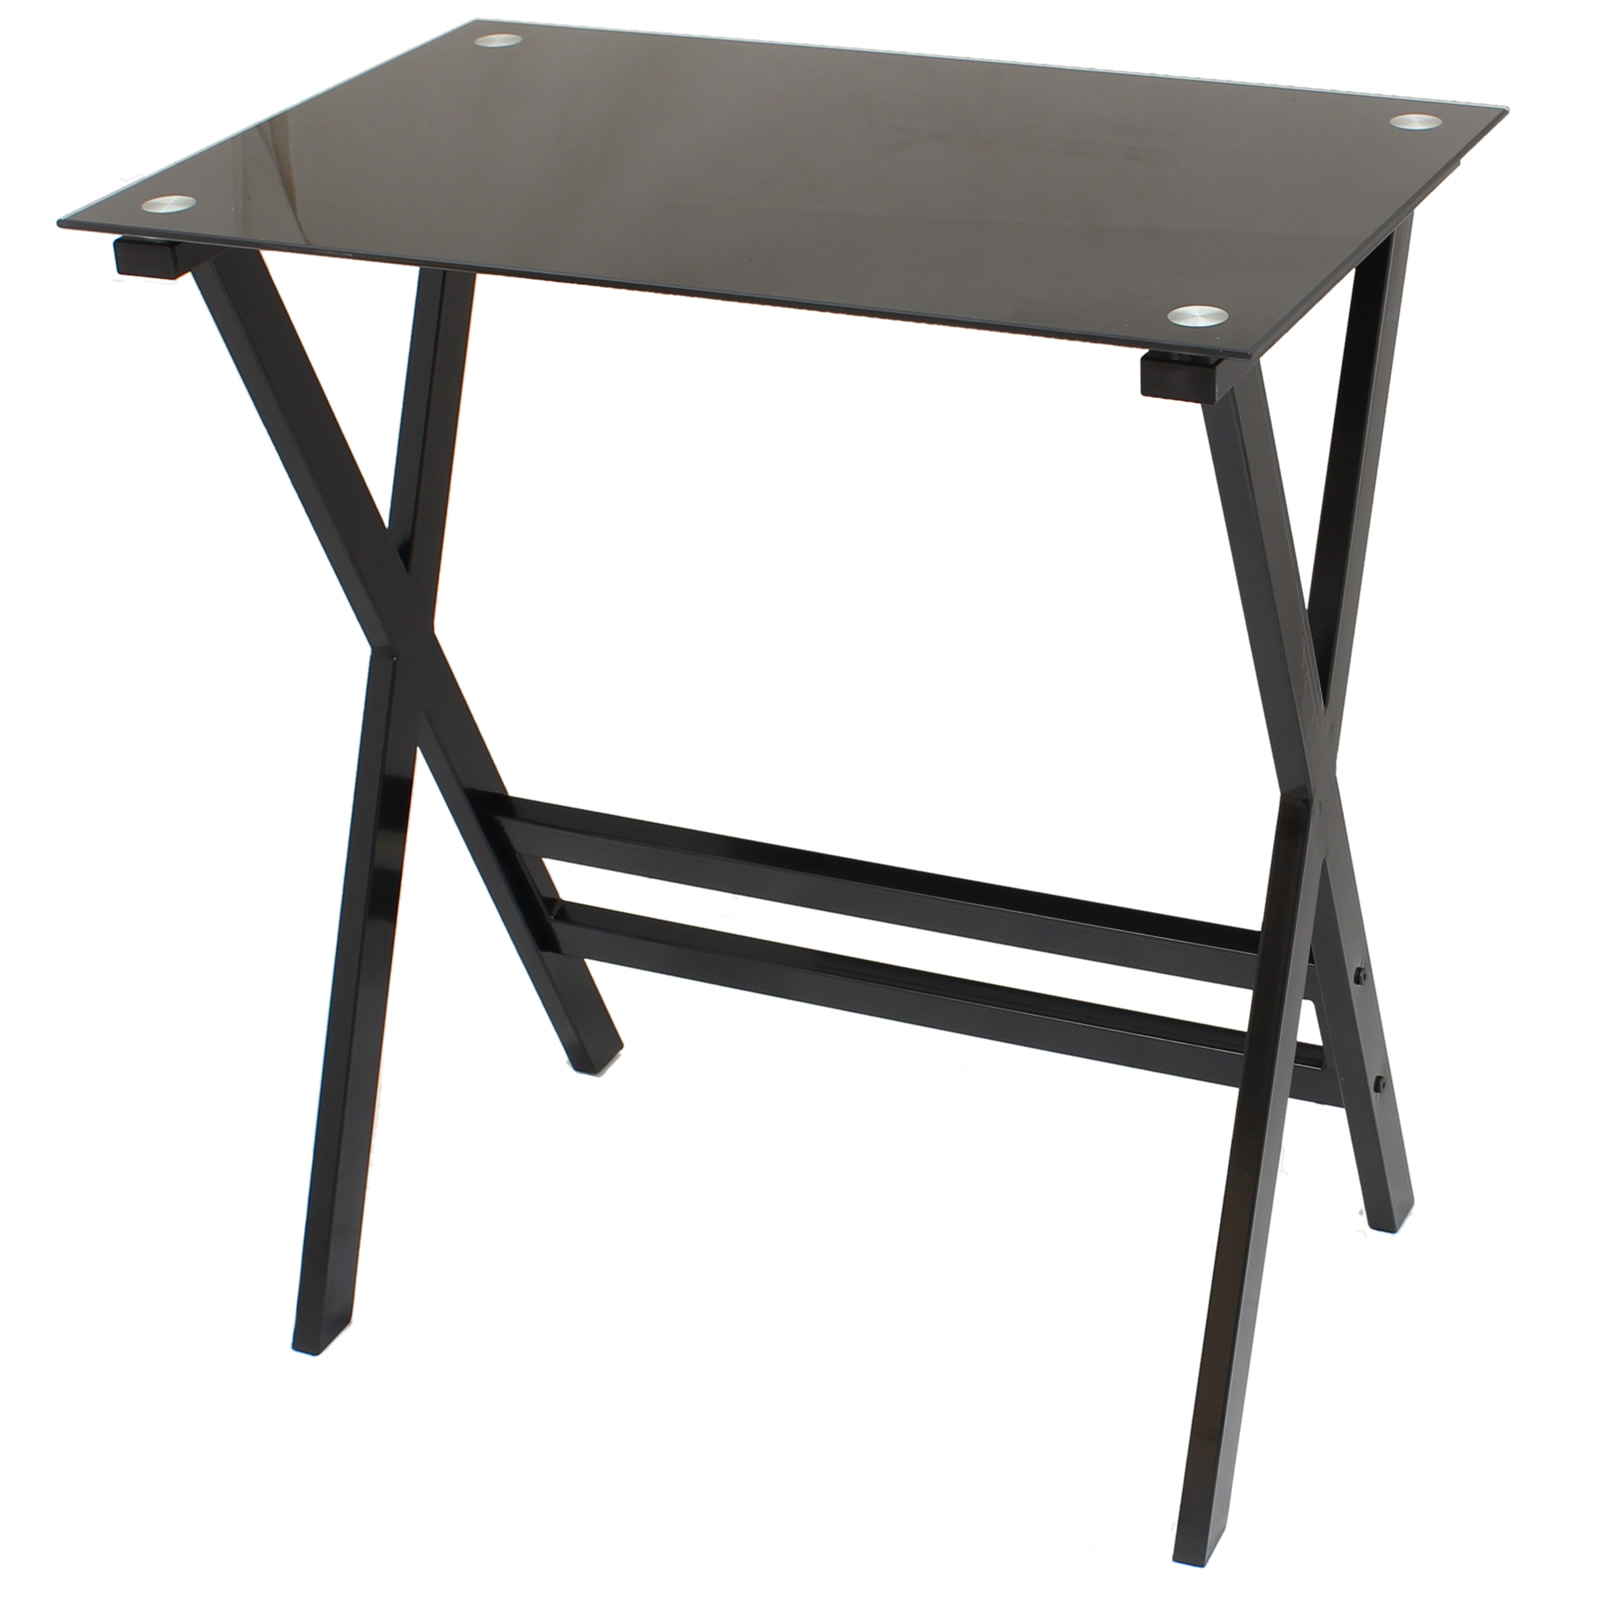 BLACK GLASS COMPUTER DESK TABLE PC/LAPTOP HOME/OFFICE/ST UDY FURNITURE